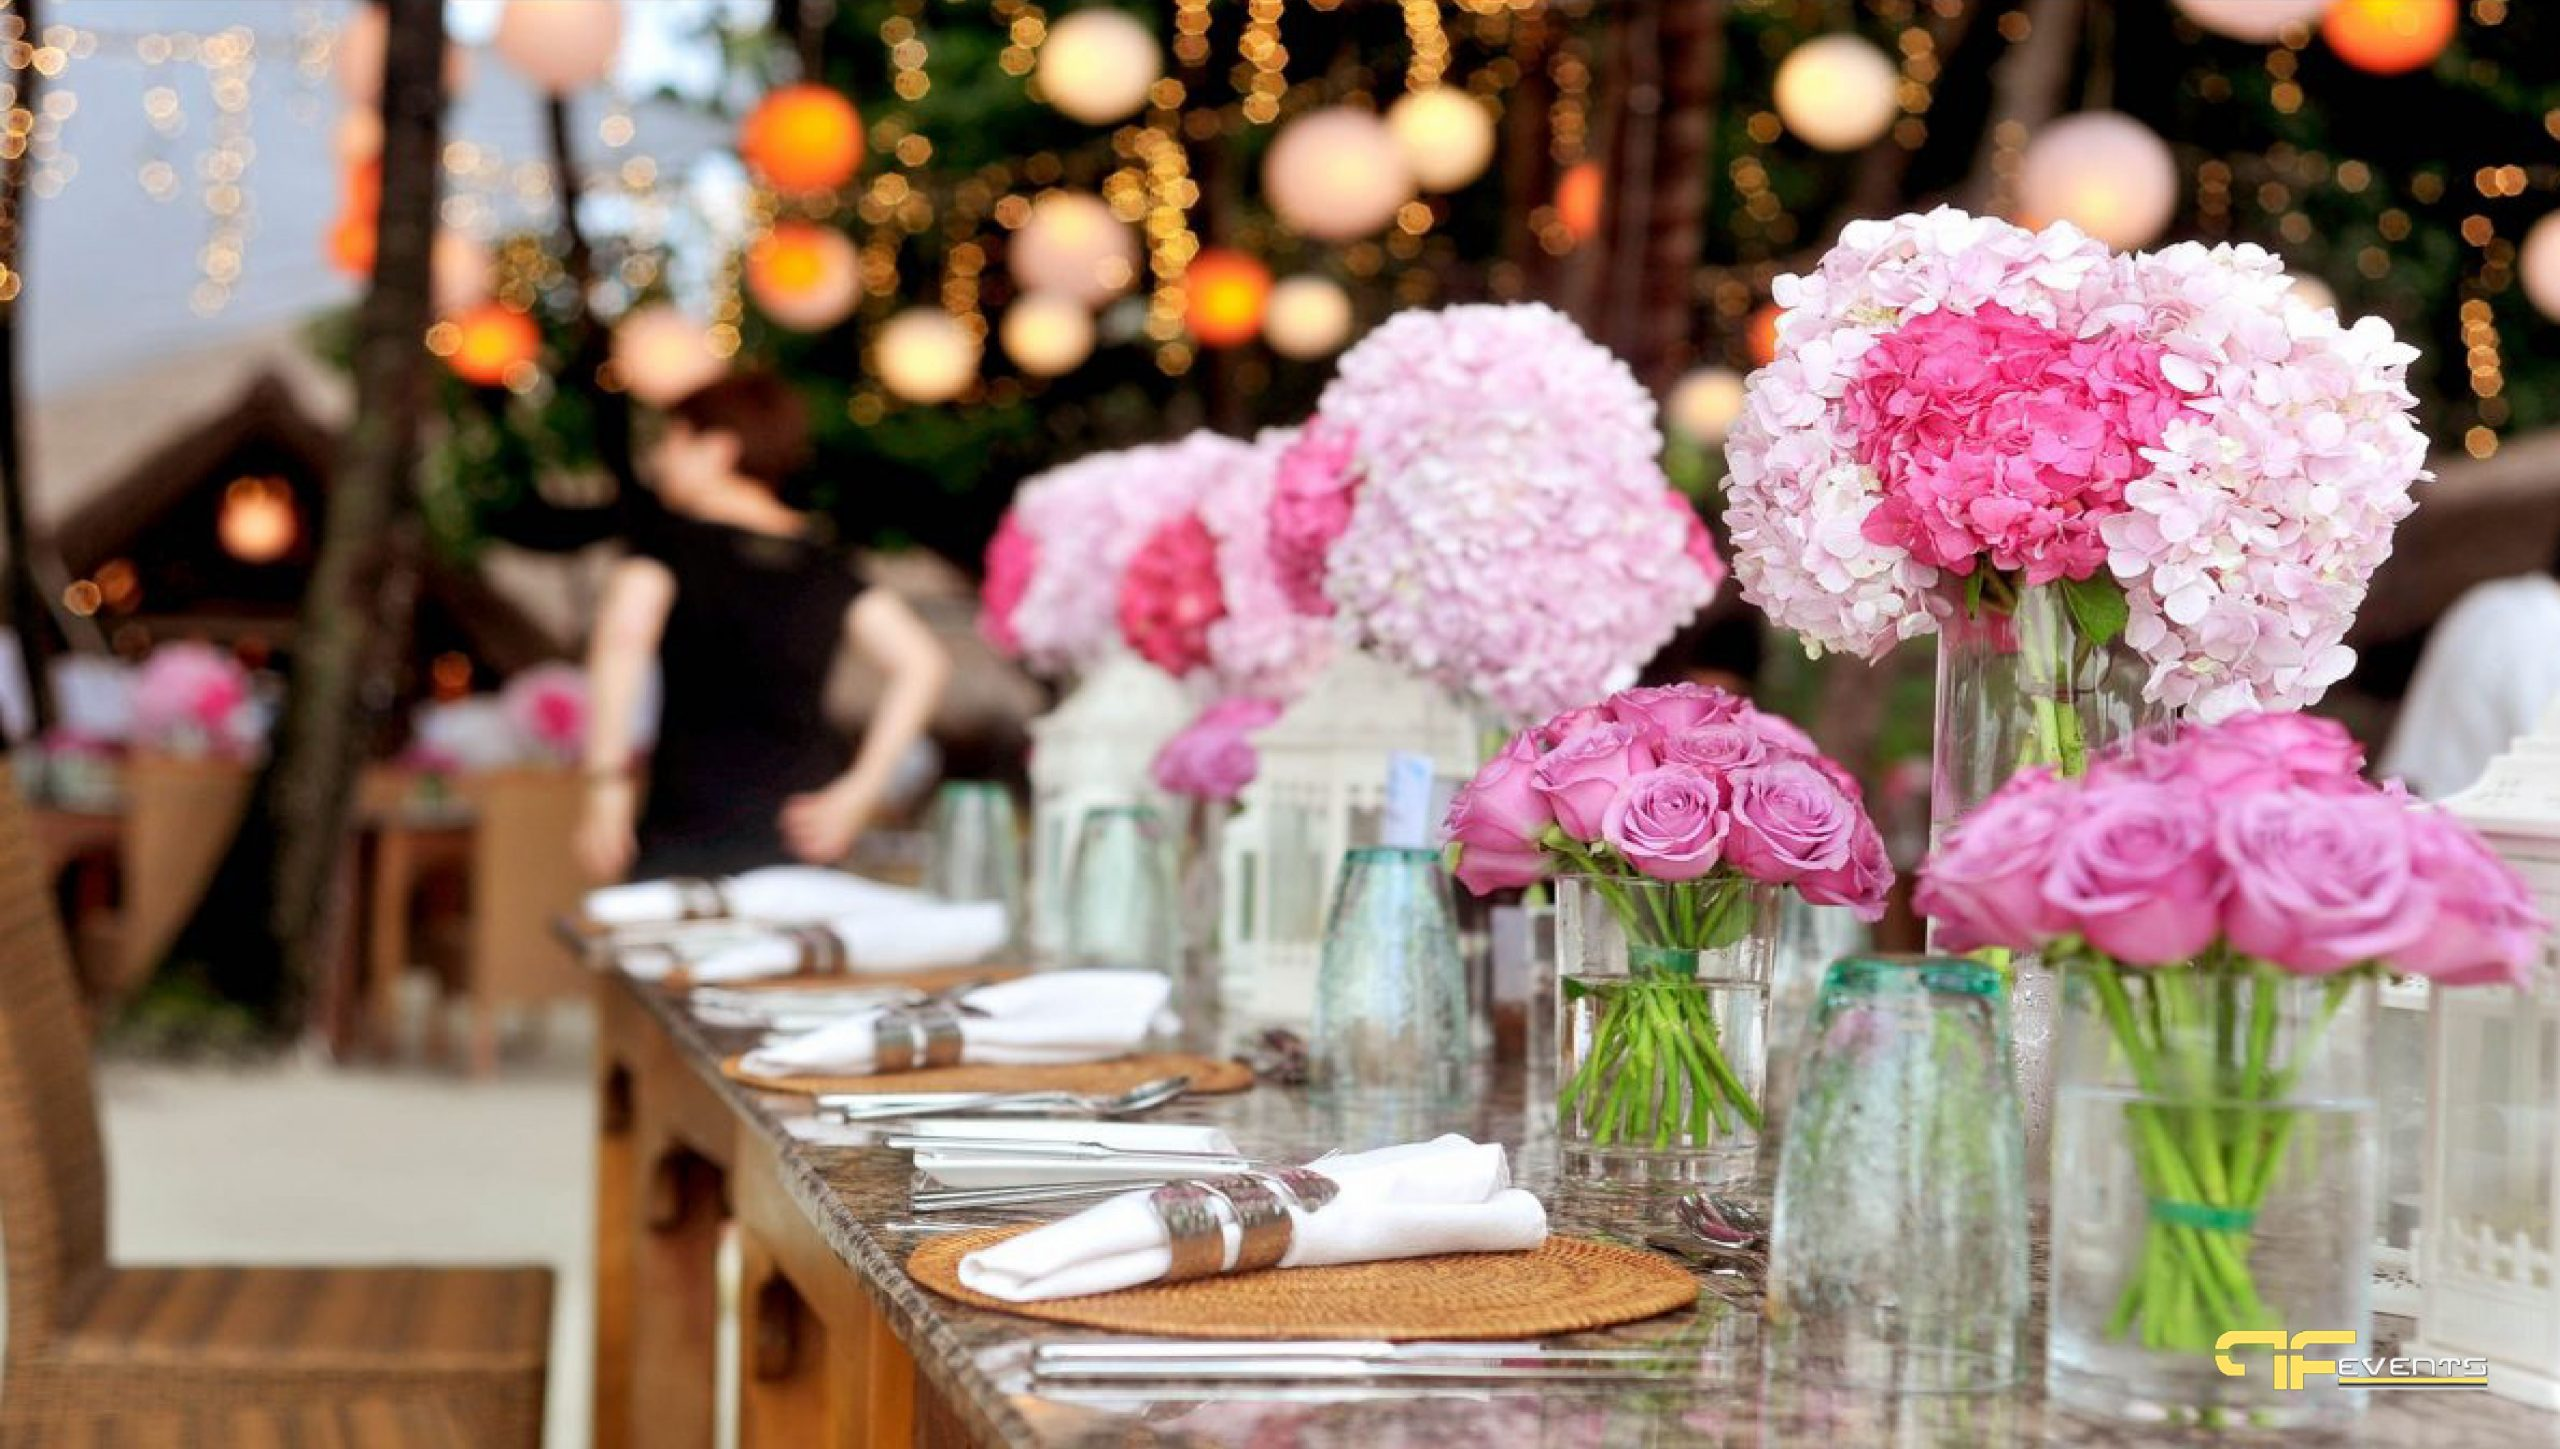 Entertainment Companies: Hire a Professional to Perform on Your Wedding or Reception